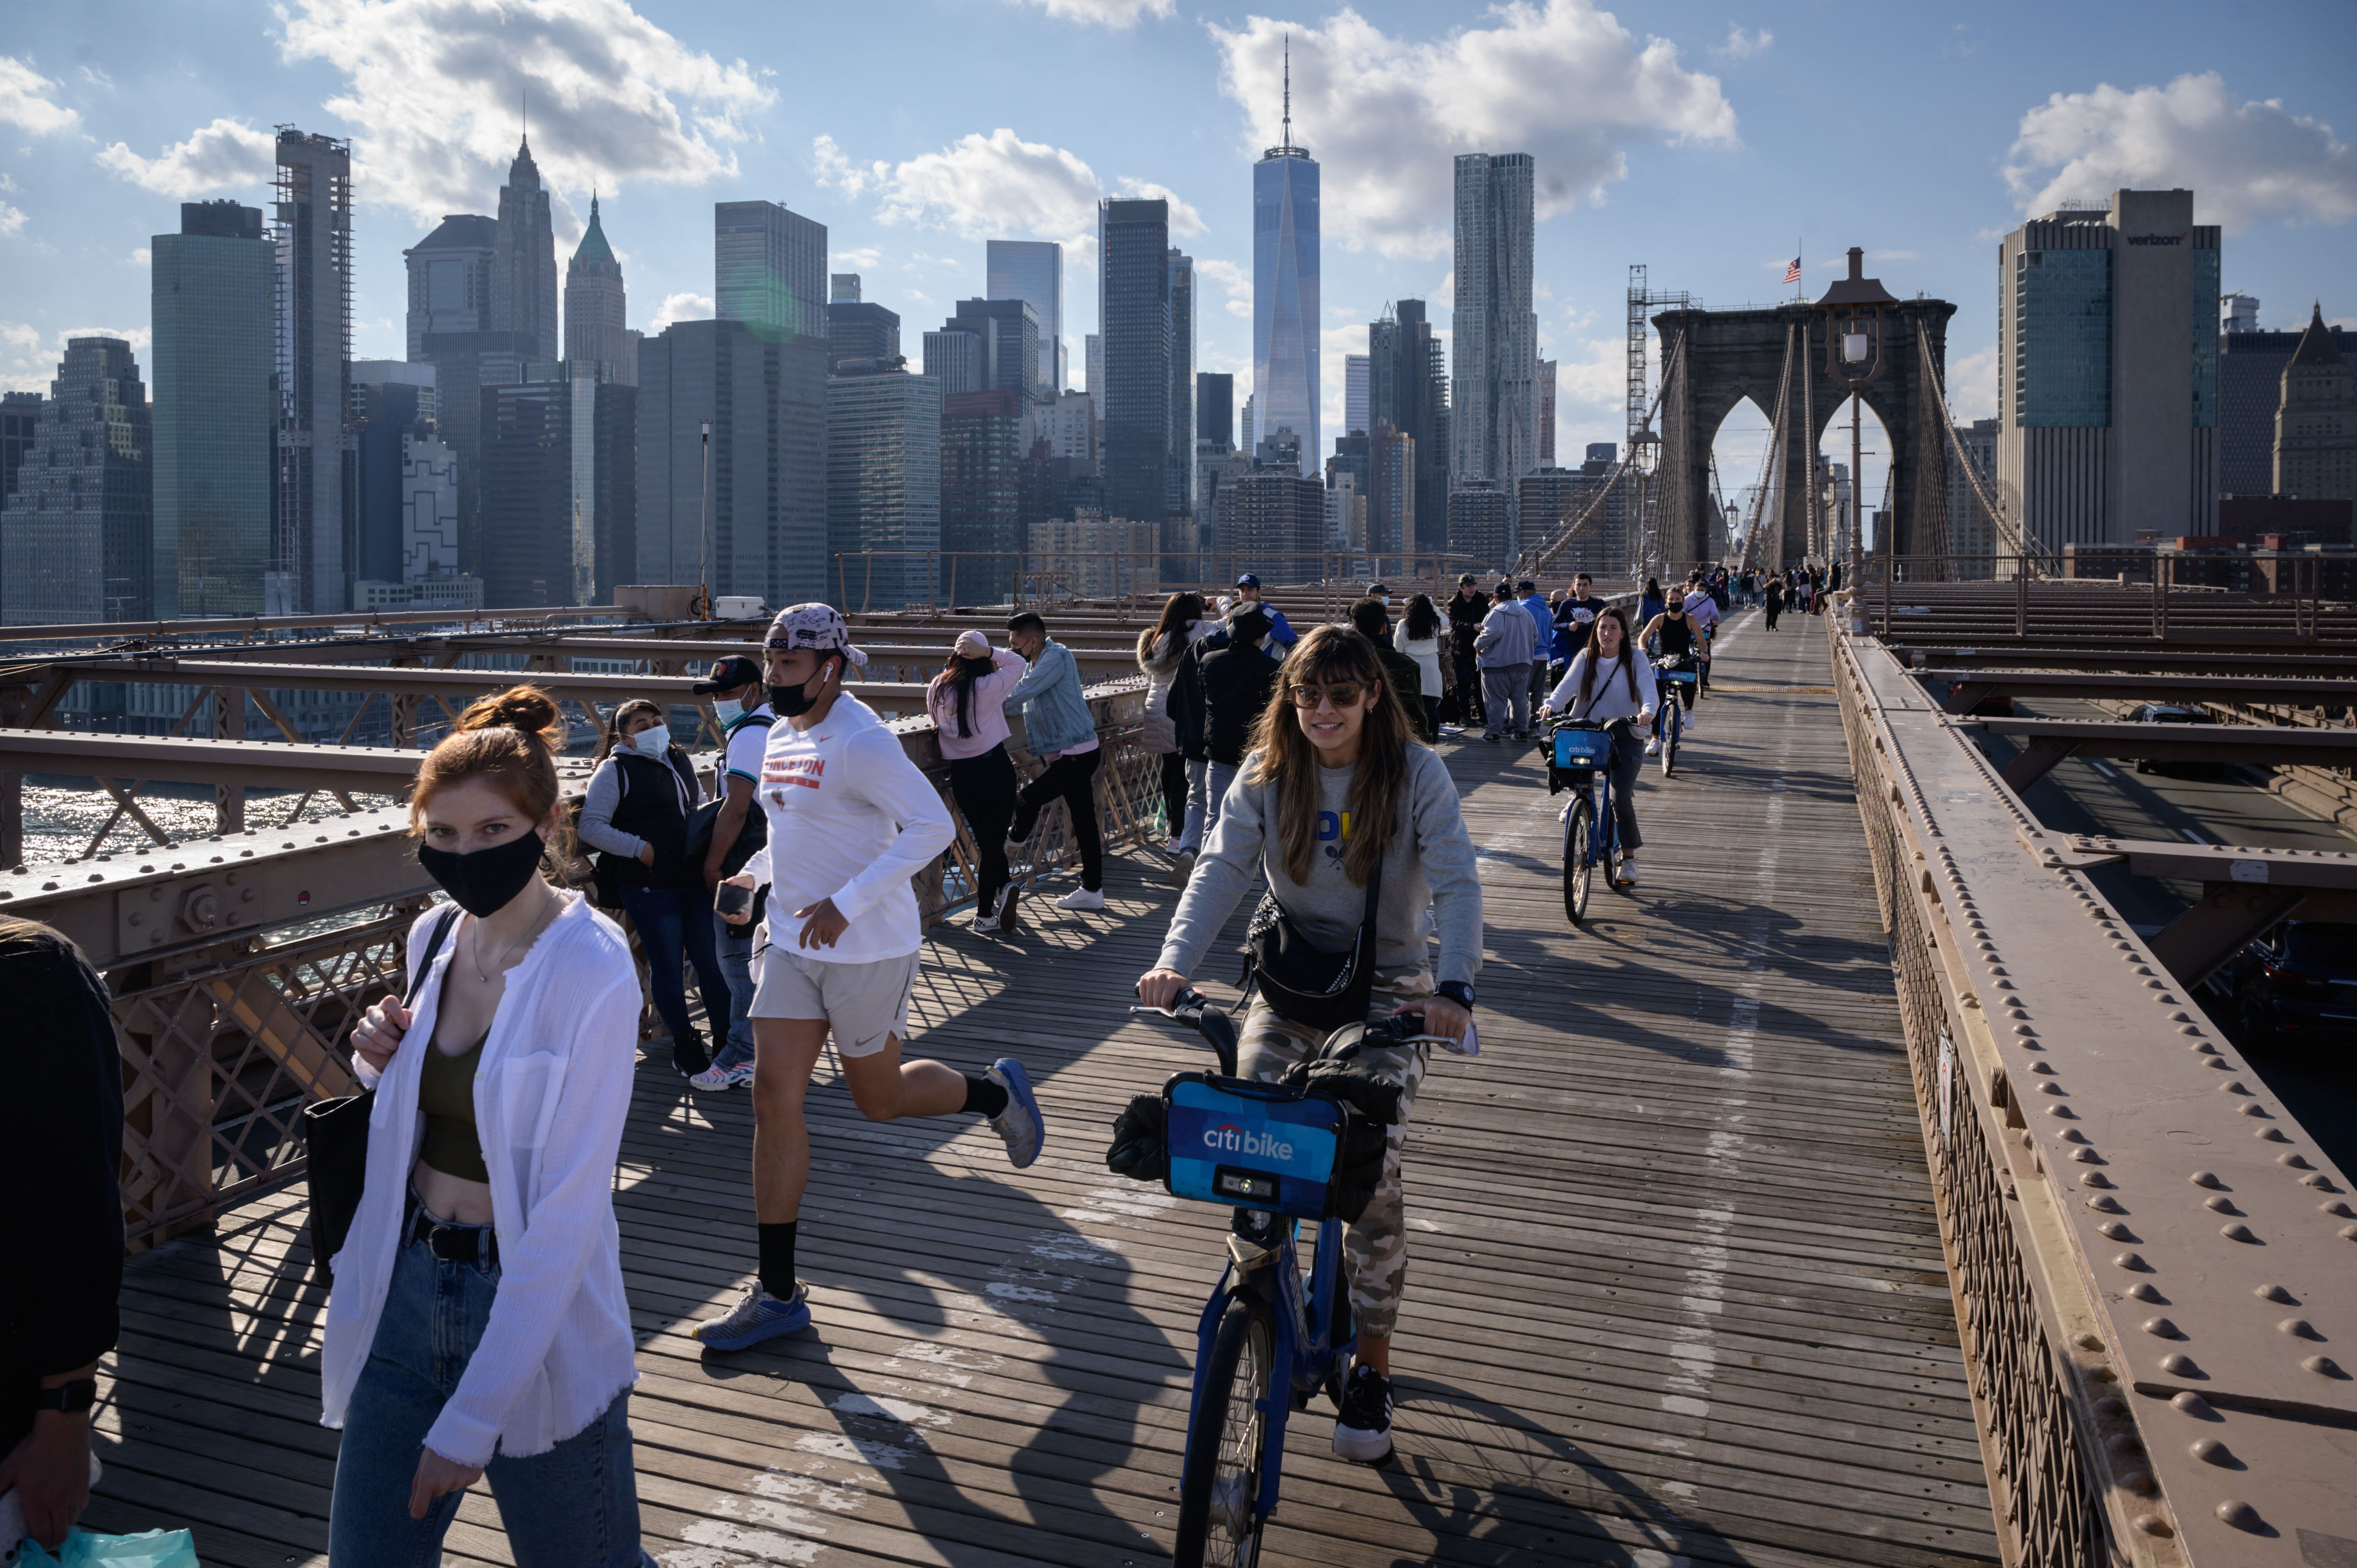 New York City Mayor Bill de Blasio says the city will reopen 100% on July 1 – CNBC